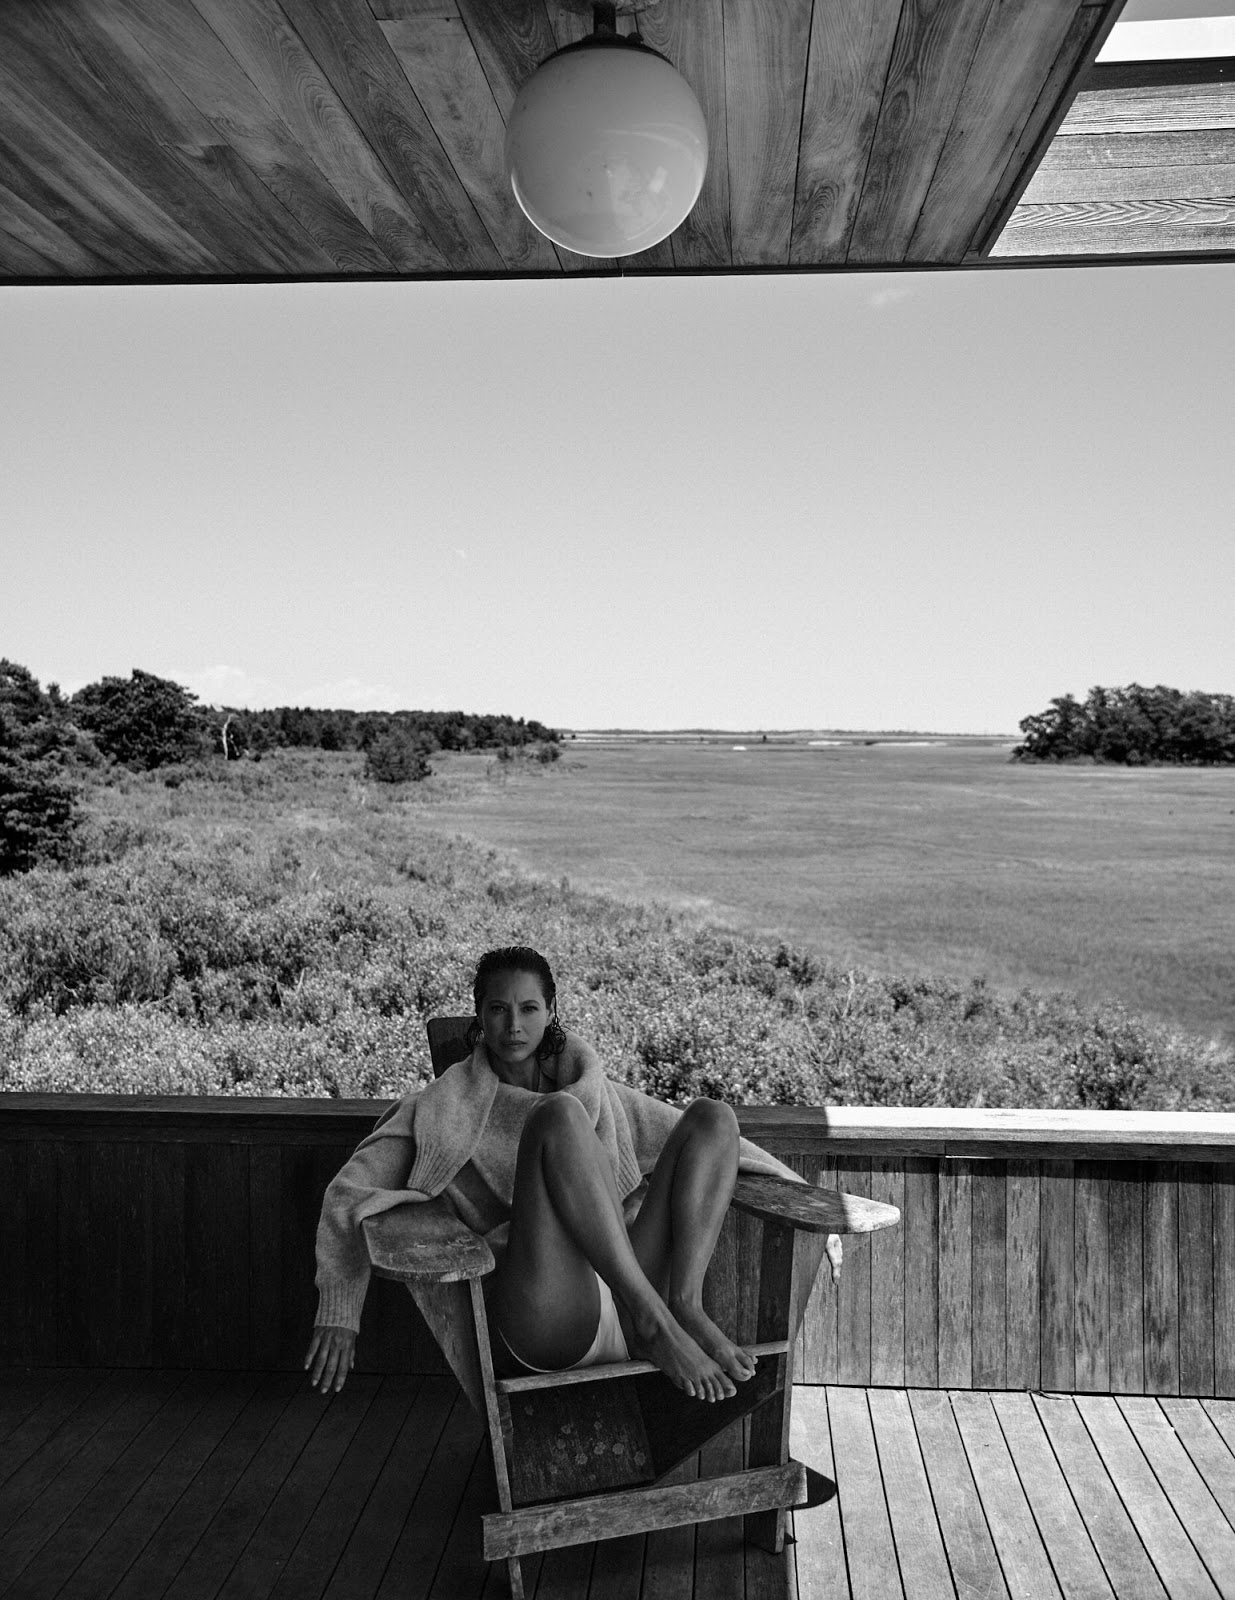 ChristyTurlington+by+ChrisColls+VoguePoland+Sep2018-02.jpg